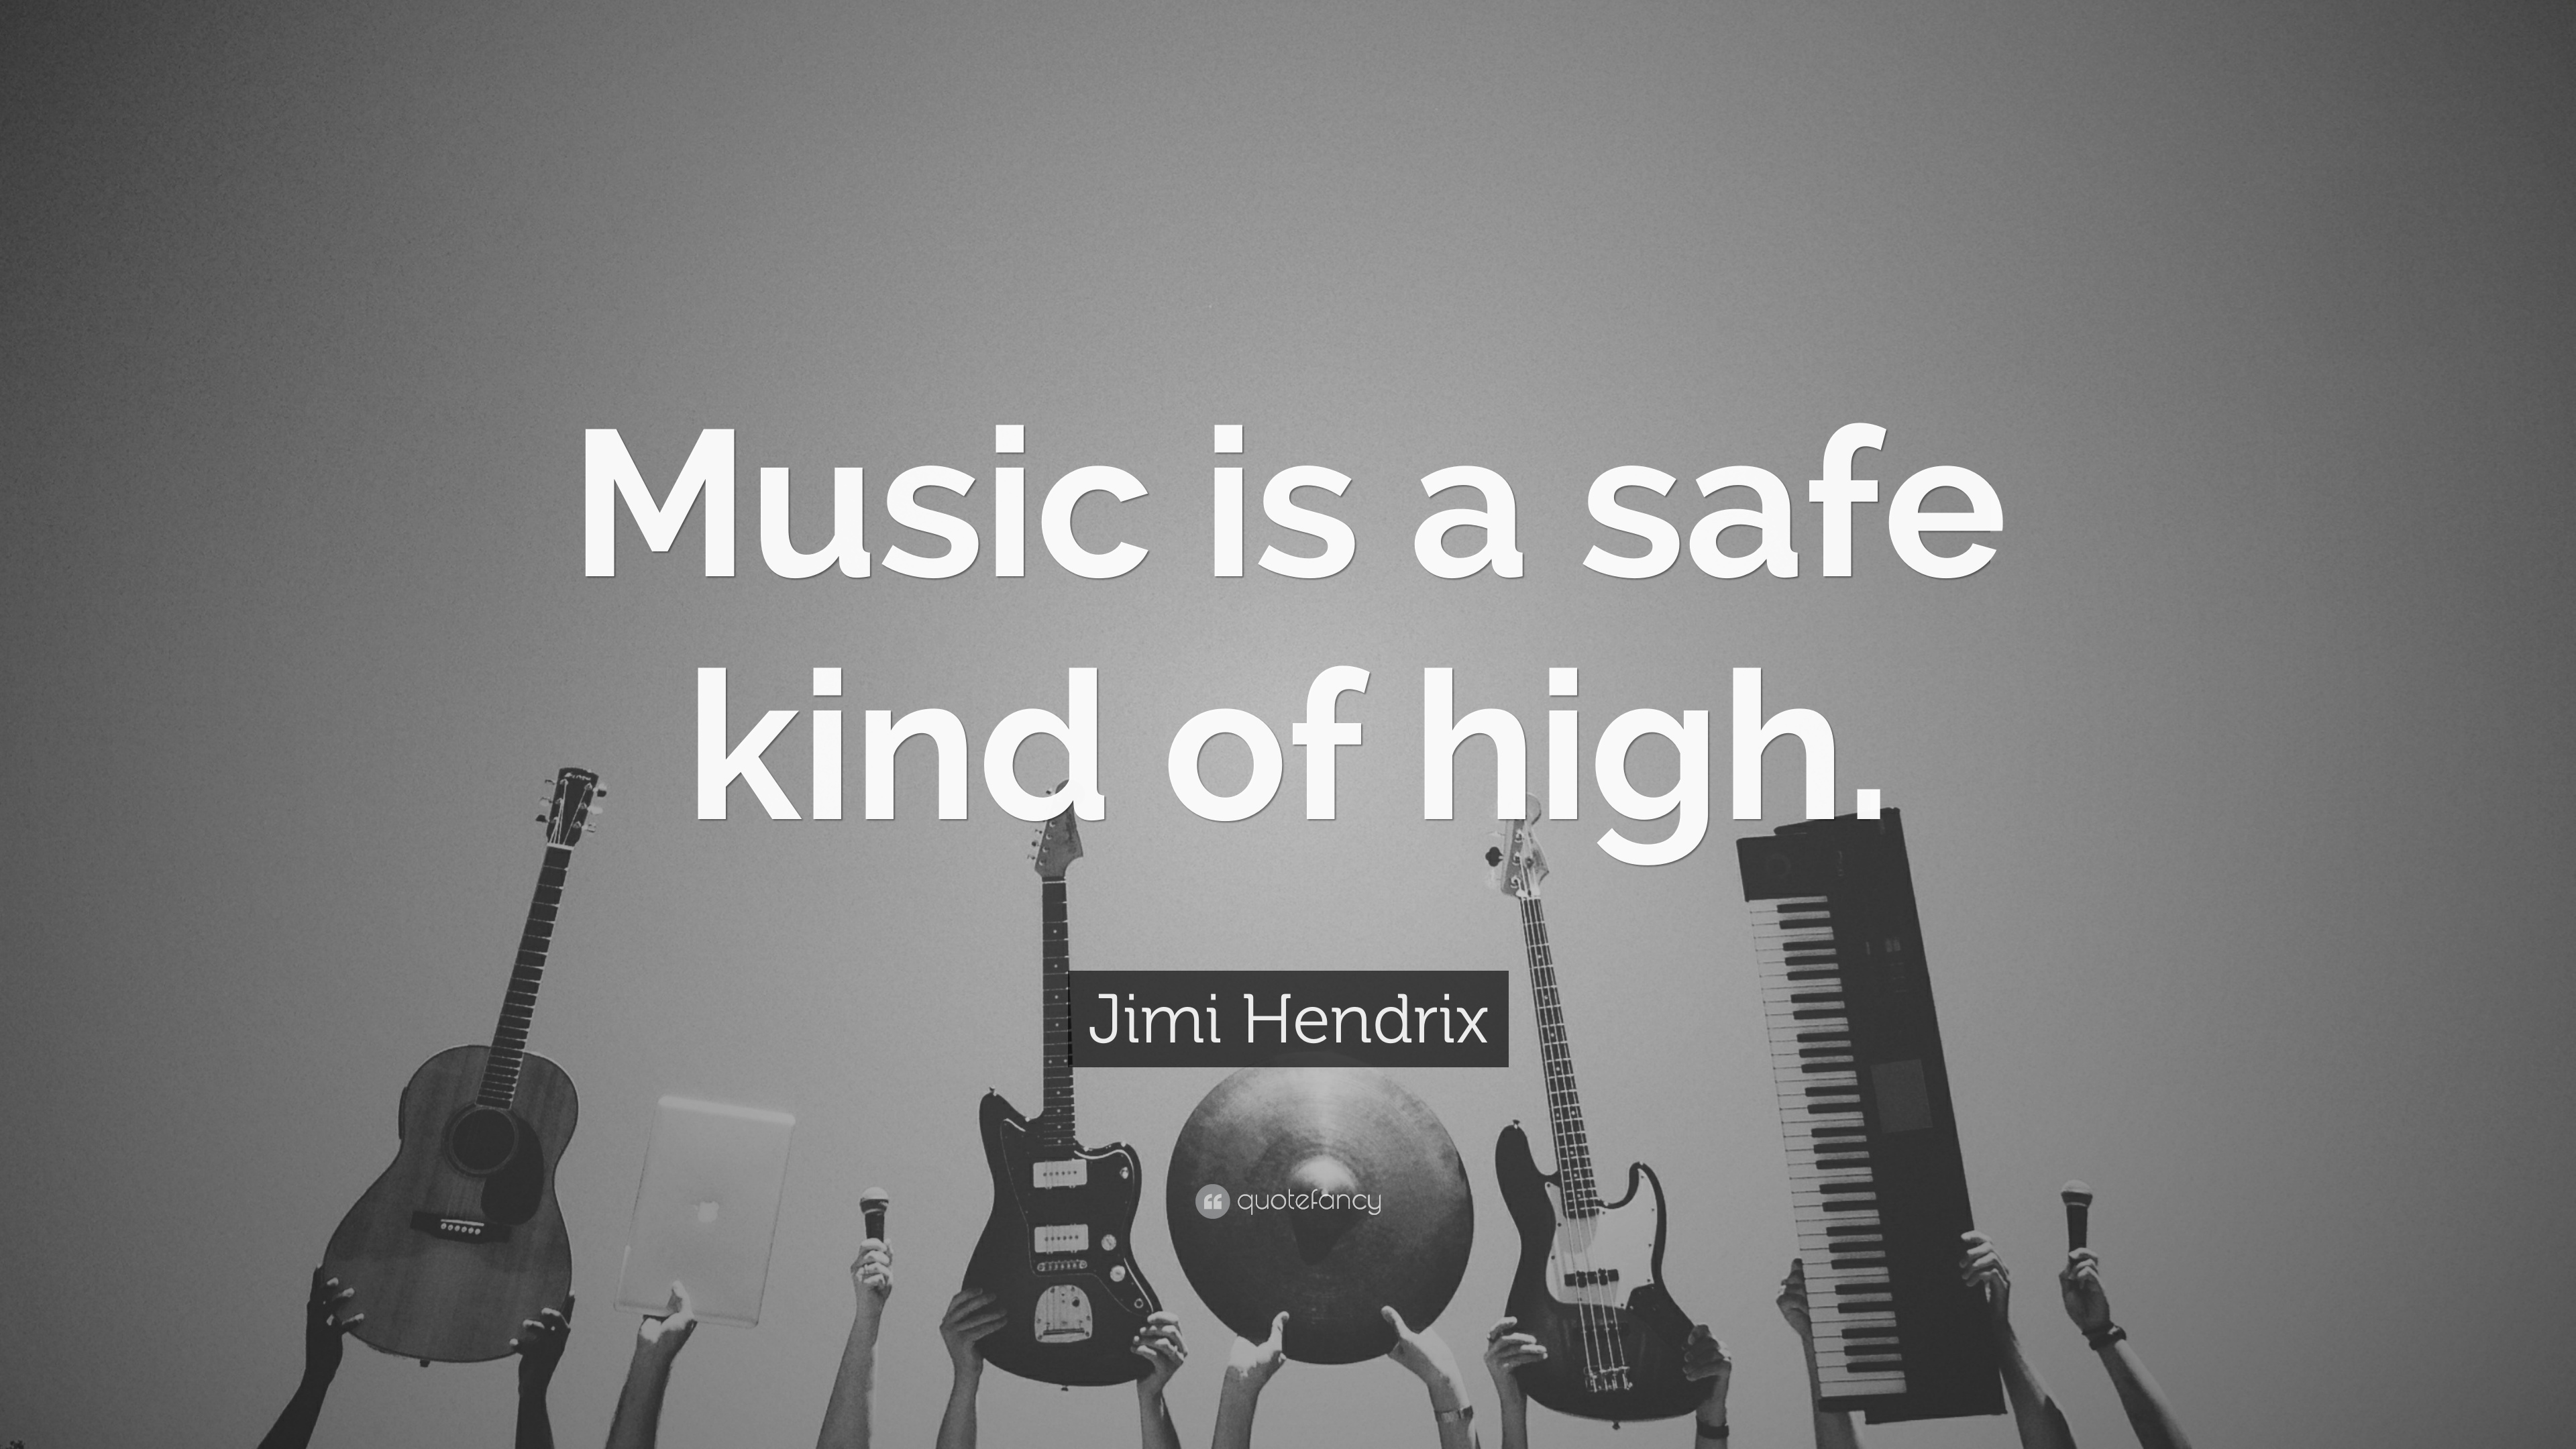 Wonderful Wallpaper Music Aesthetic - 28204-Jimi-Hendrix-Quote-Music-is-a-safe-kind-of-high  HD_827153.jpg